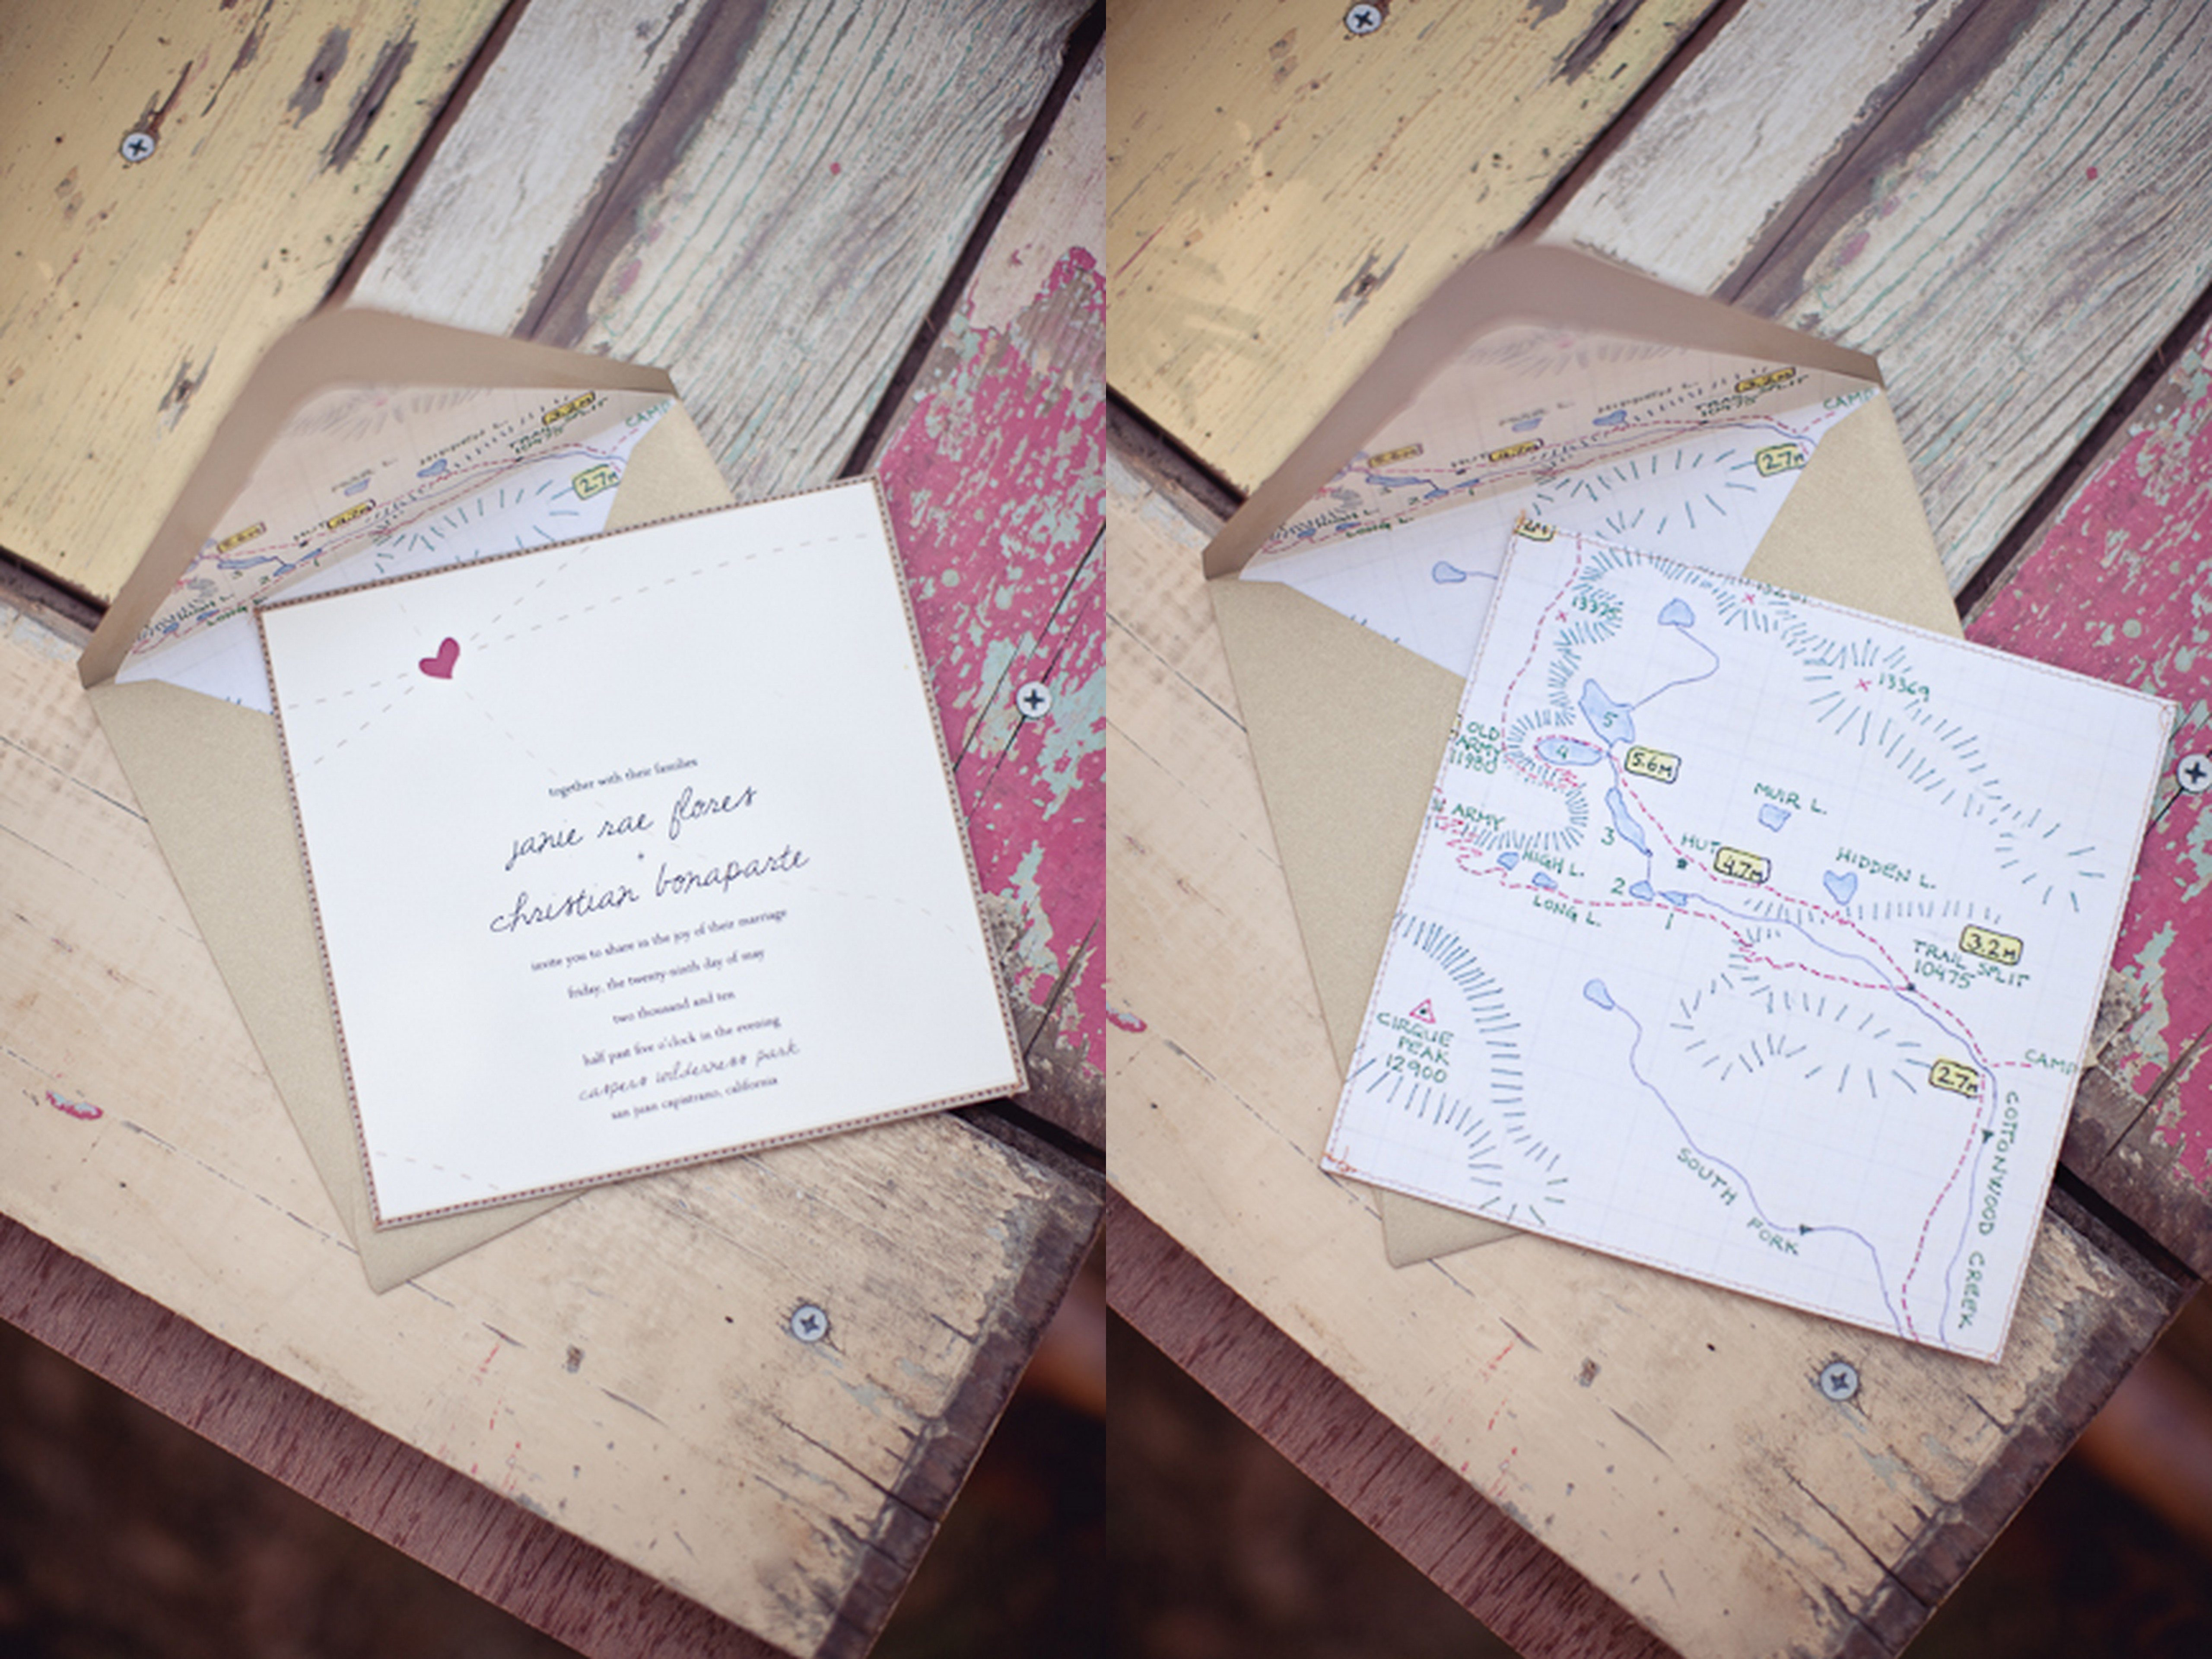 Wedding invitation maps do it yourself 28 images diy printable wedding invitation maps do it yourself just happily after the wedding create travel wedding invitation maps do it yourself solutioingenieria Gallery